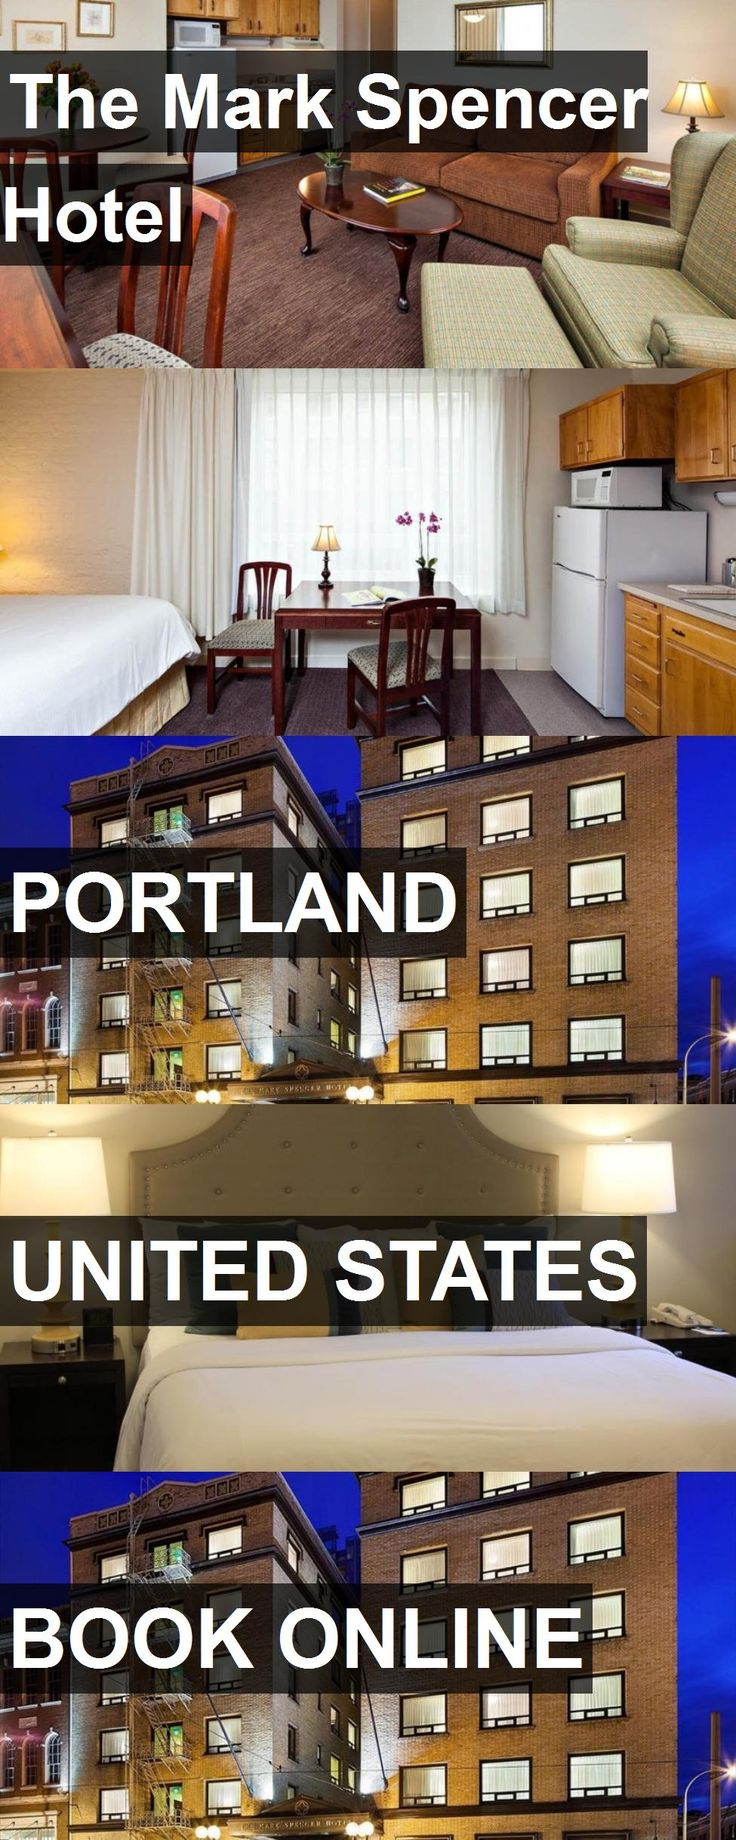 The Mark Spencer Hotel in Portland, United States. For more information, photos, reviews and best prices please follow the link. #UnitedStates #Portland #travel #vacation #hotel